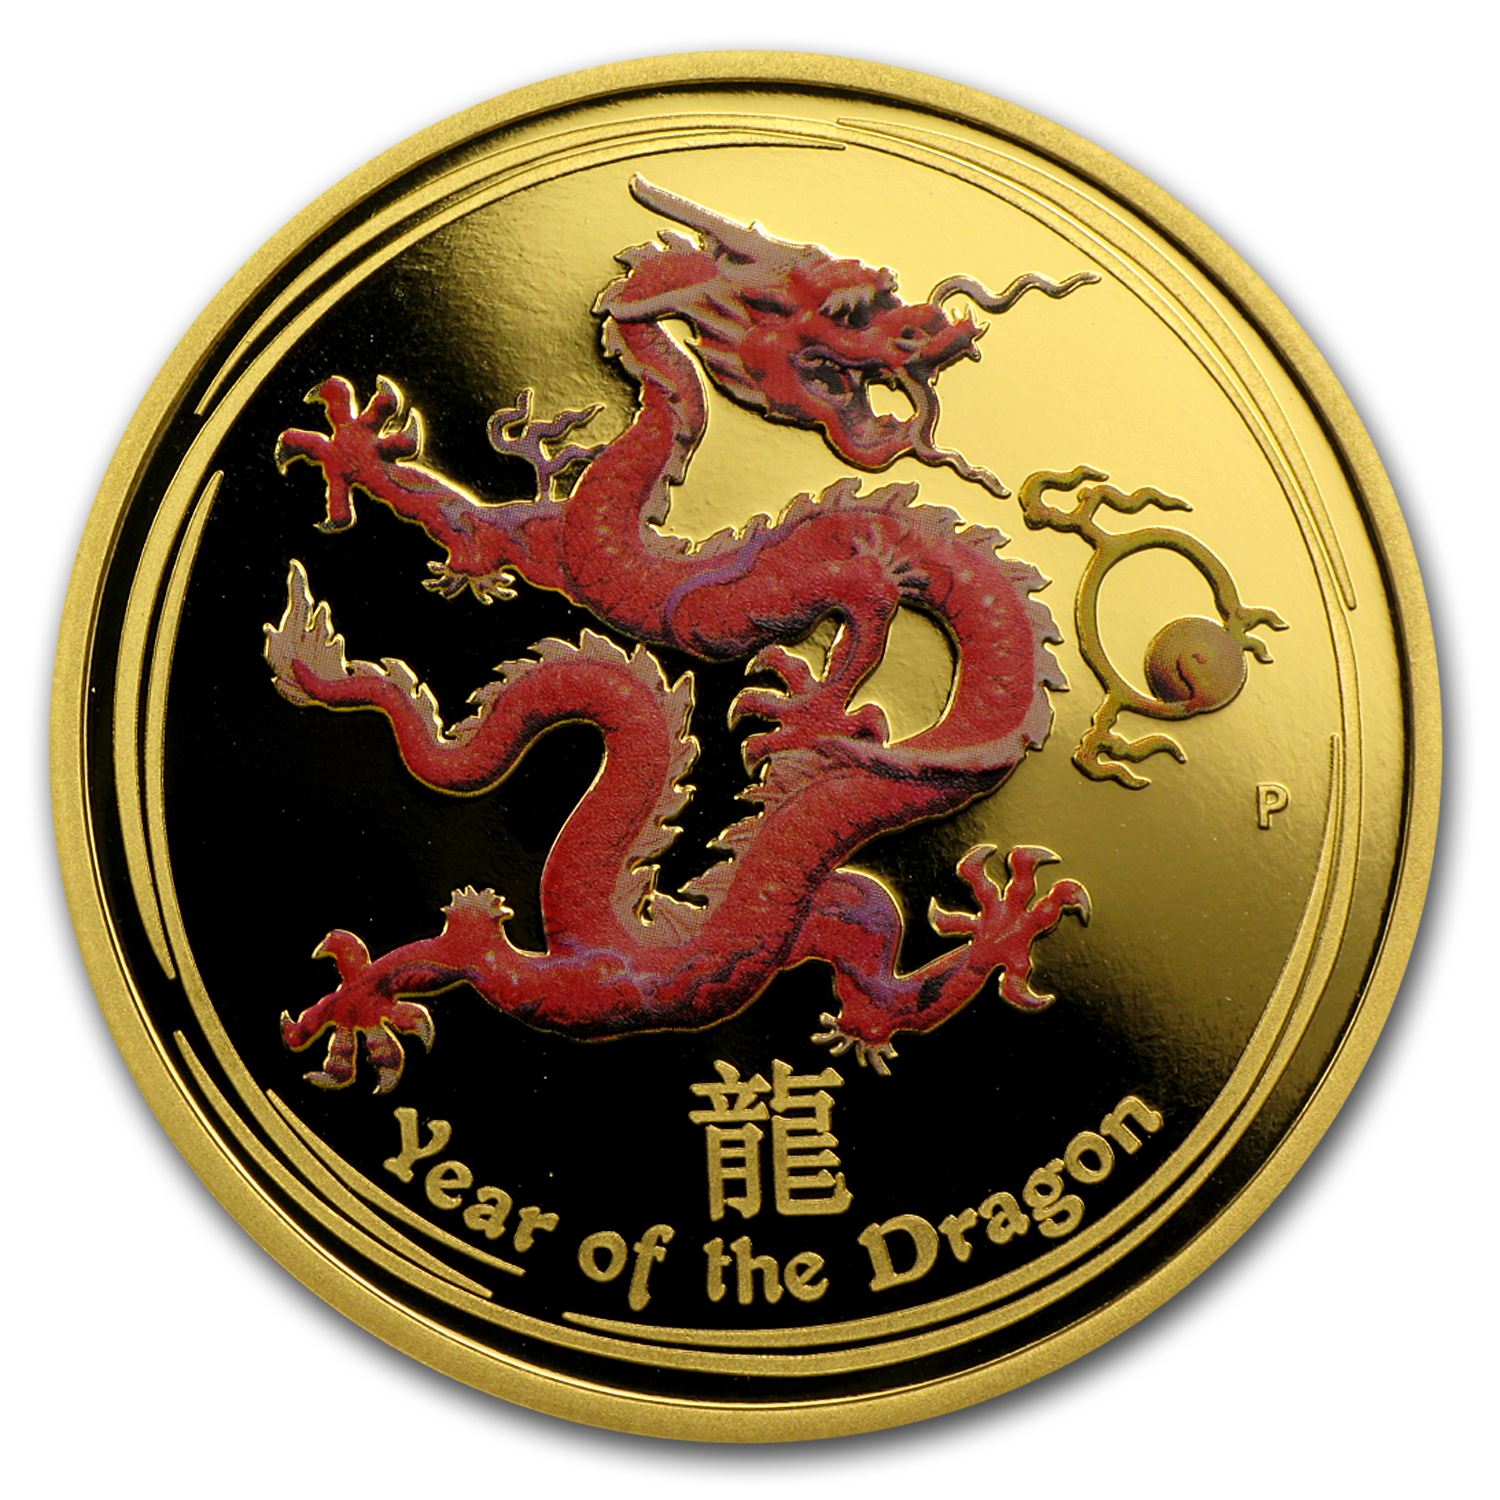 2012 Australia 1 oz Gold Lunar Dragon Pf (Series II, Colorized)